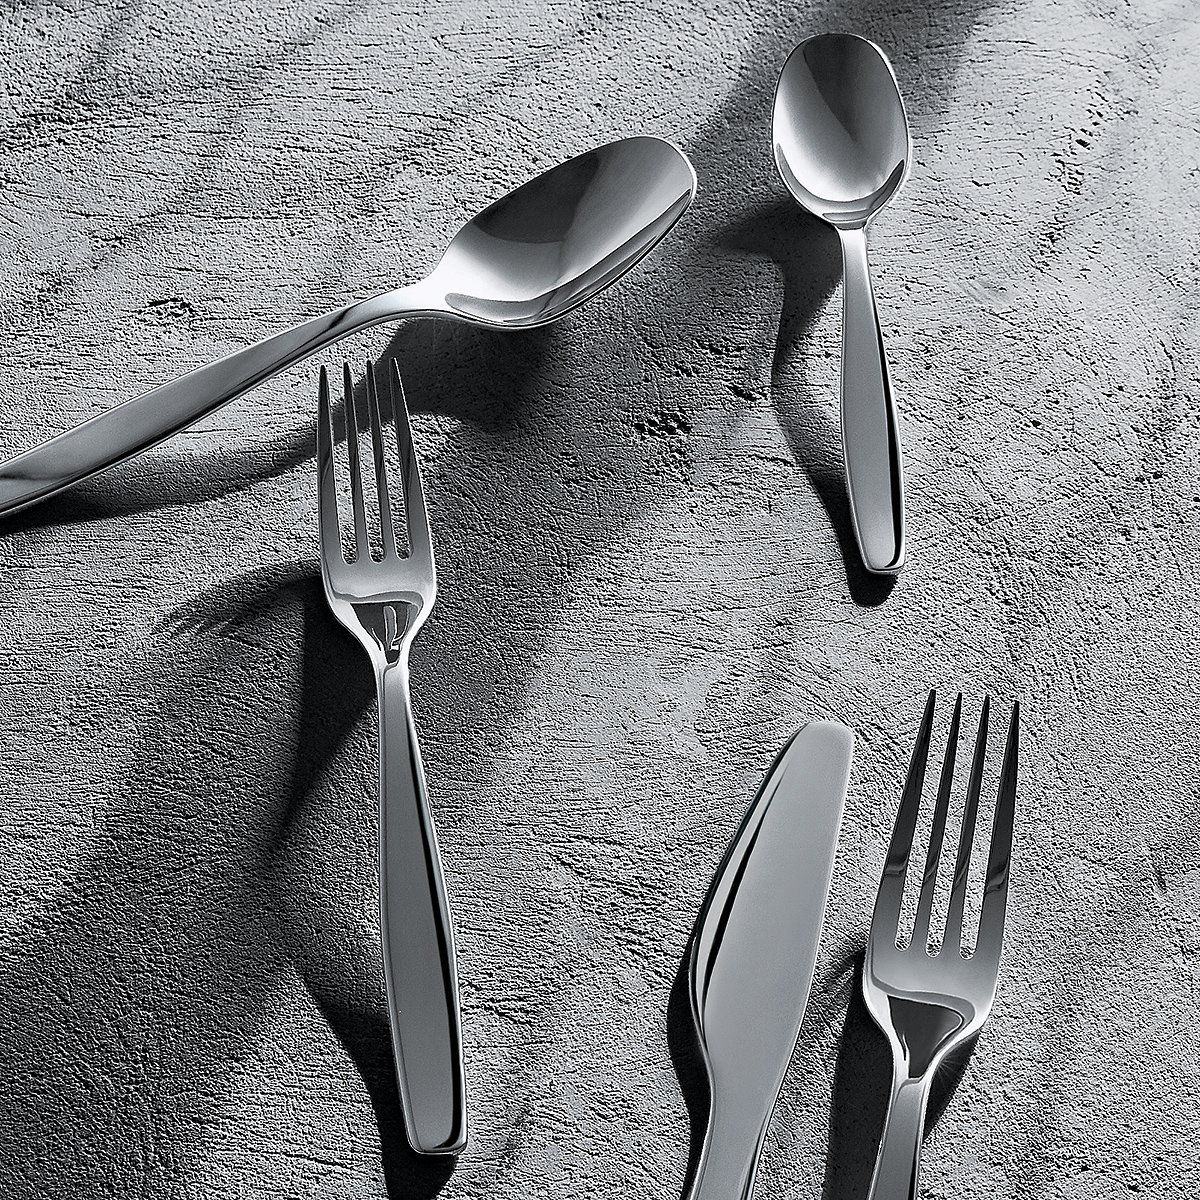 Alessi Introduces New Flatware Line 'Itsumo'